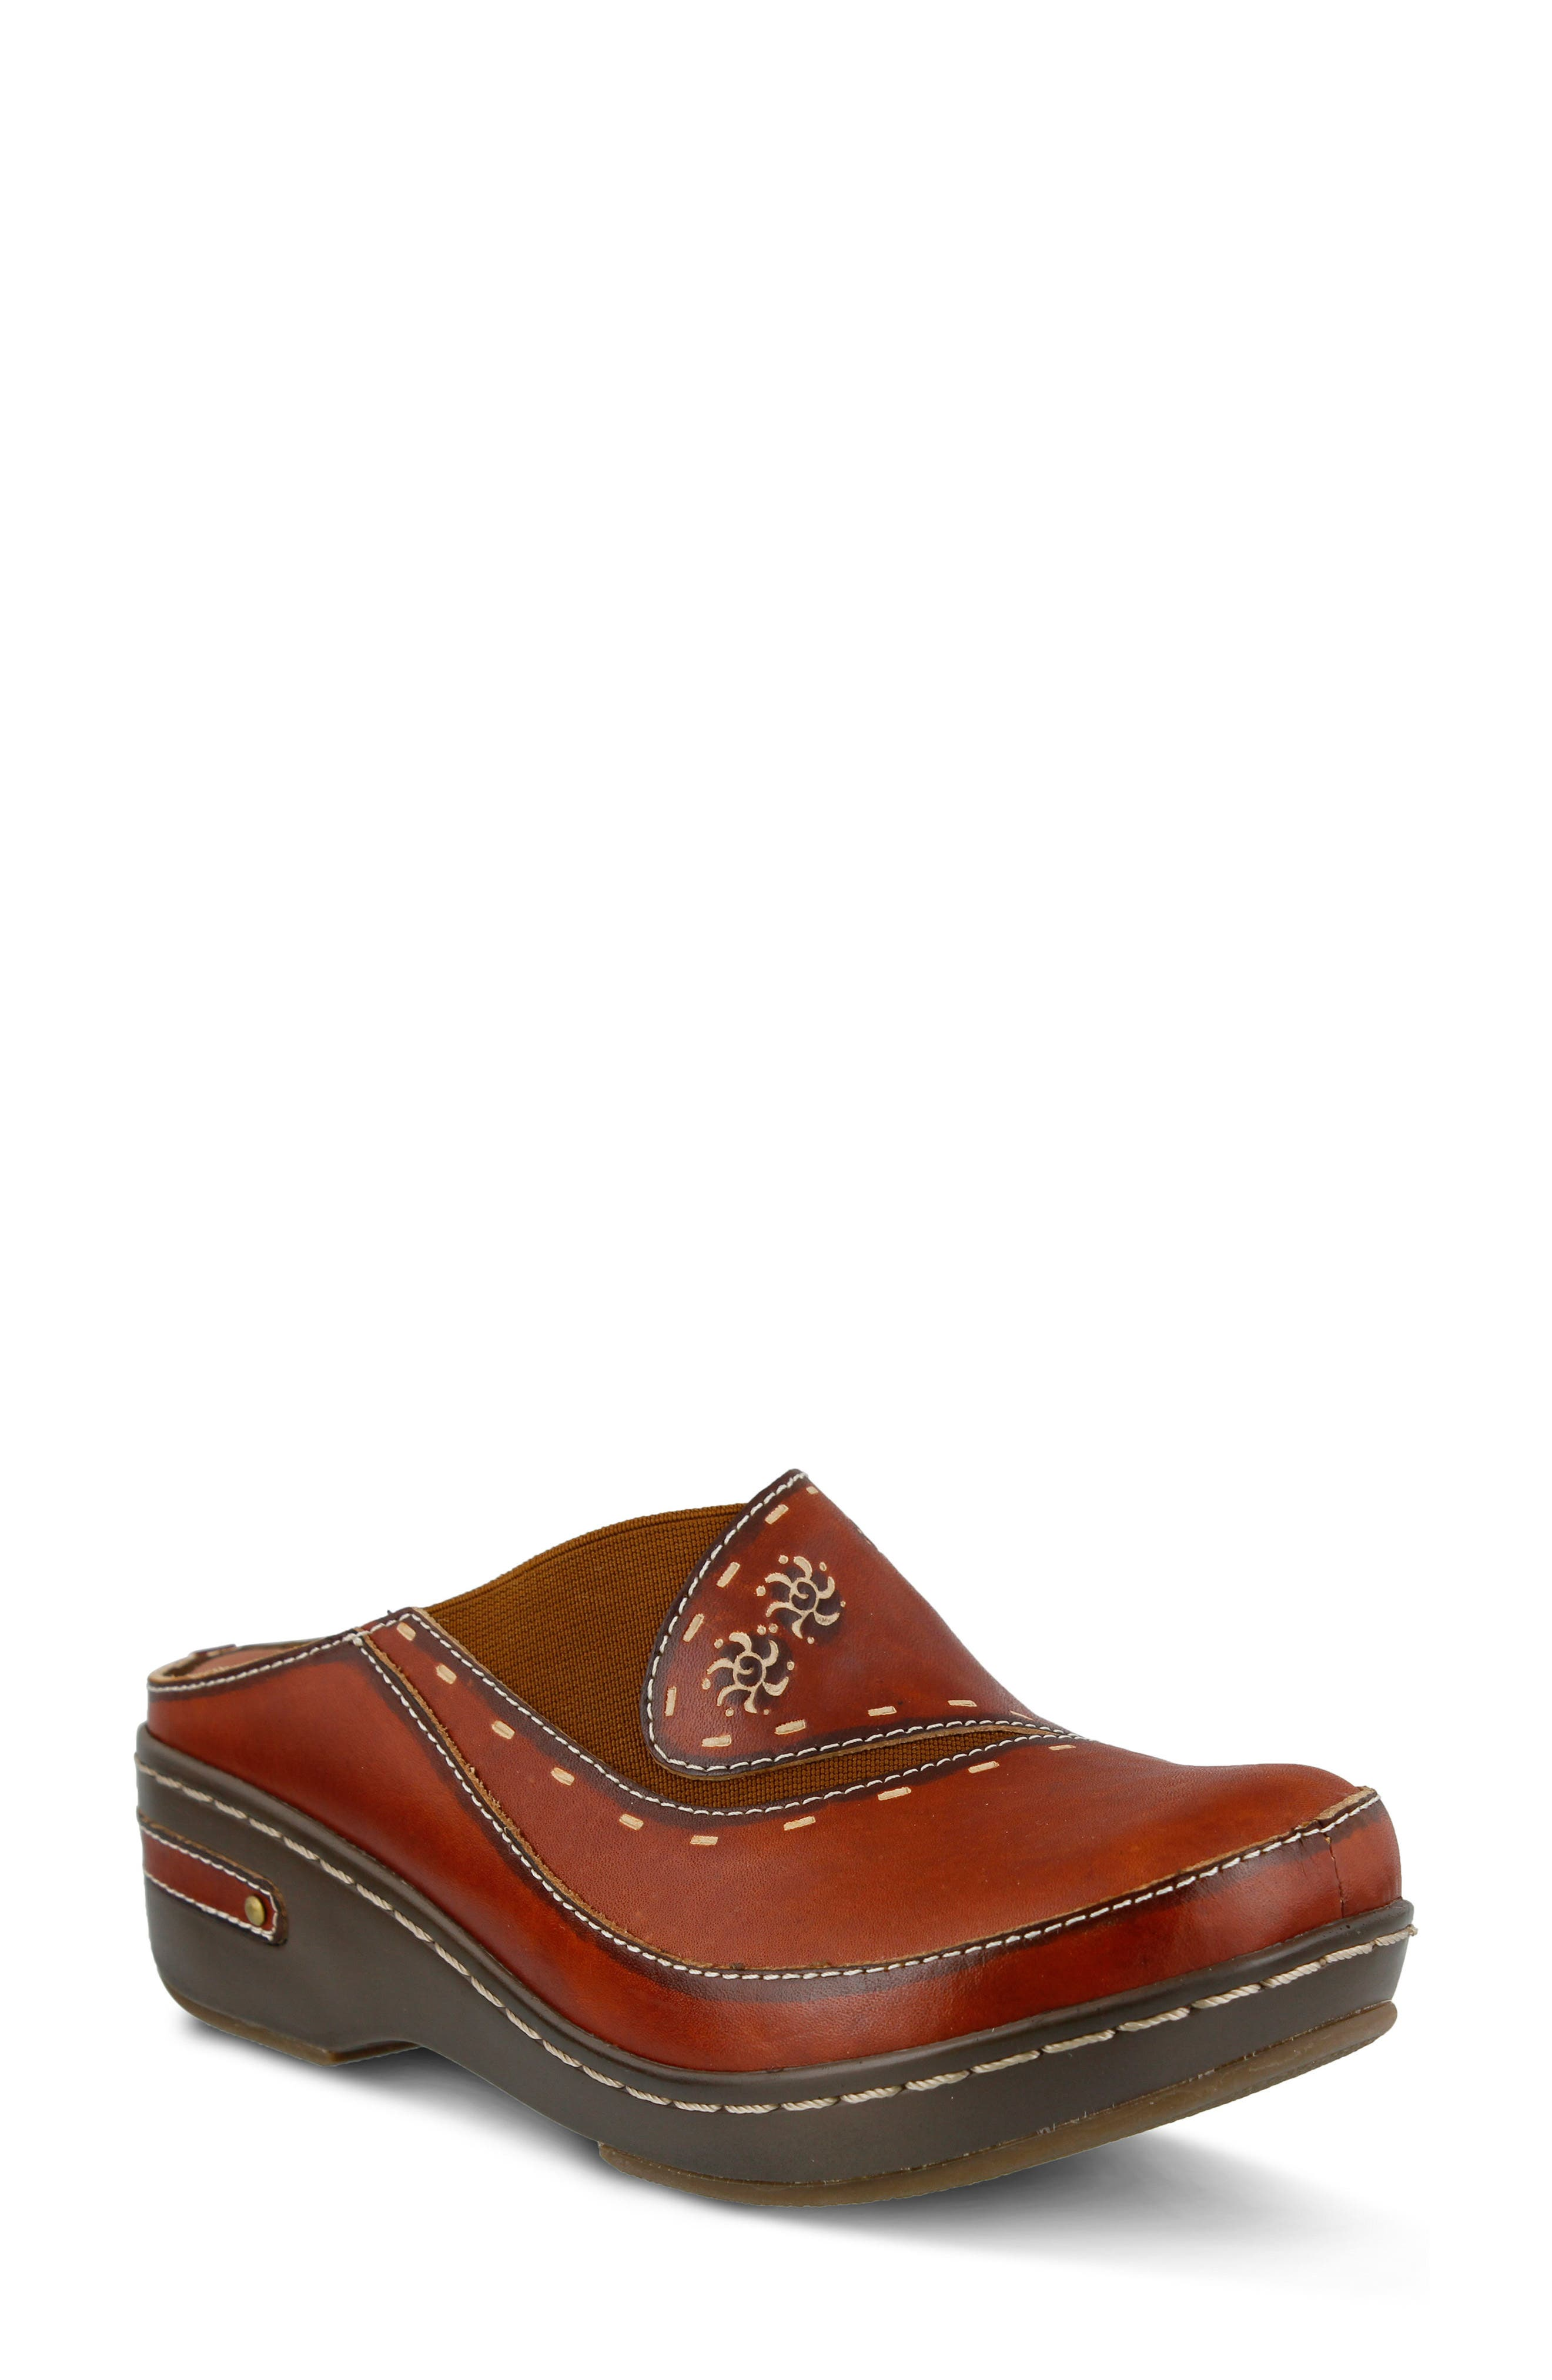 L'Artiste Chino Clog,                         Main,                         color, Camel Leather